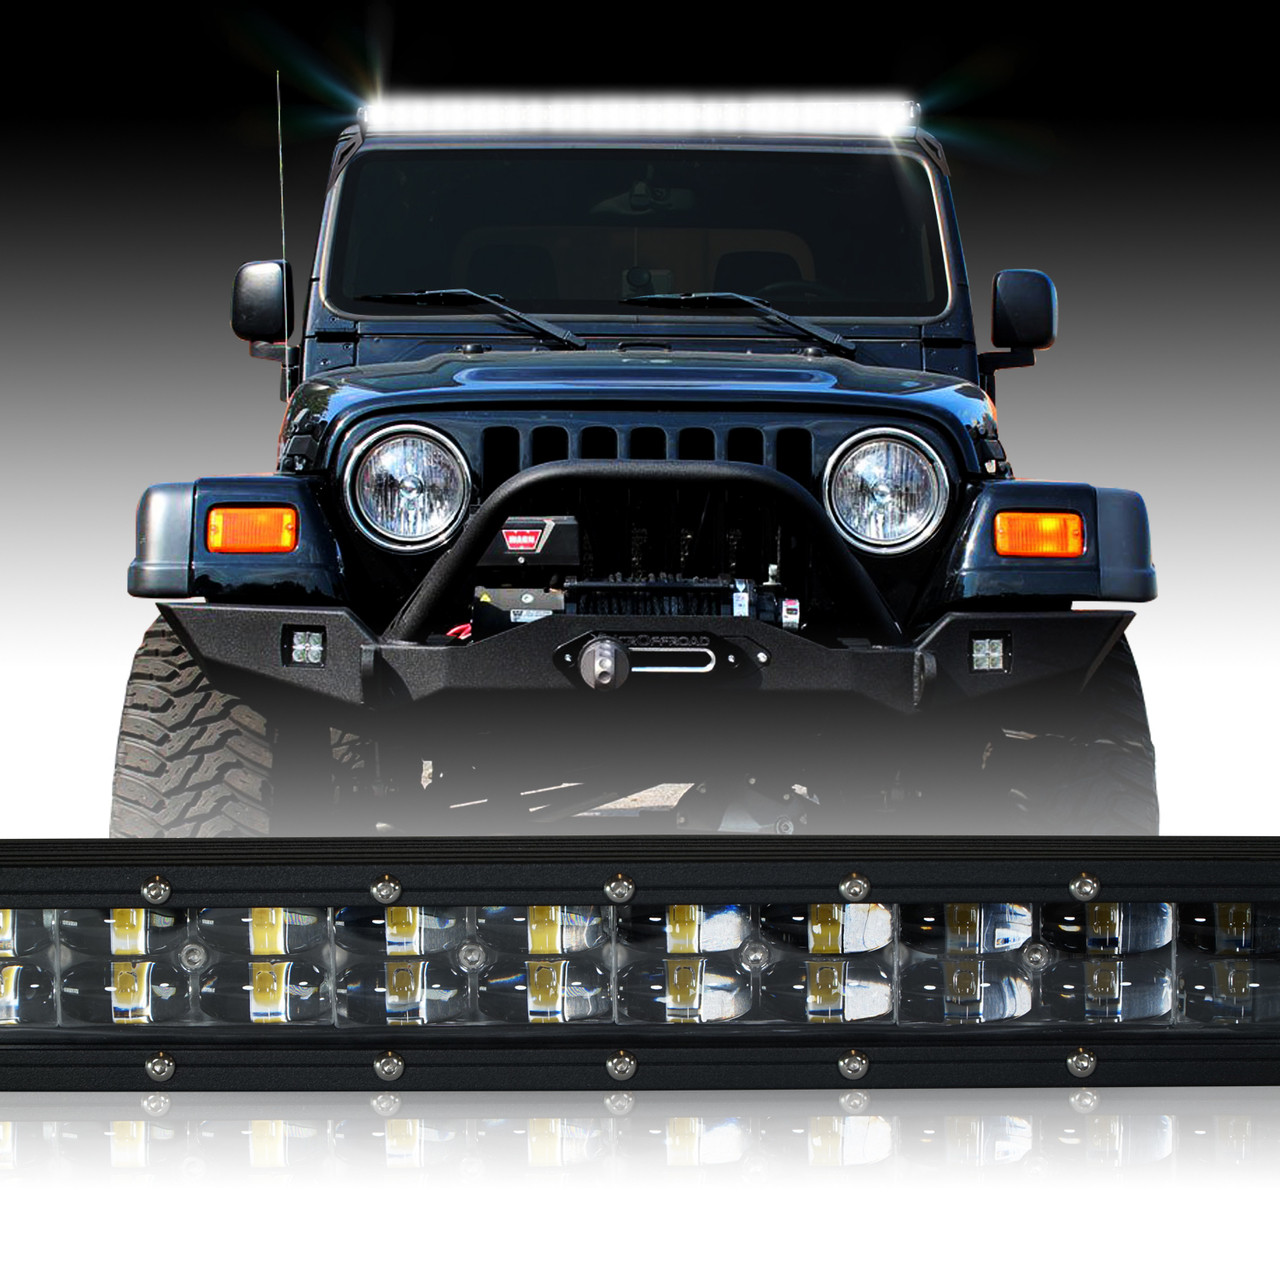 Led Light Bar 288w 50 Inches Bracket Wiring Harness Kit For Wrangler Jeep Universal Tj 1997 2006